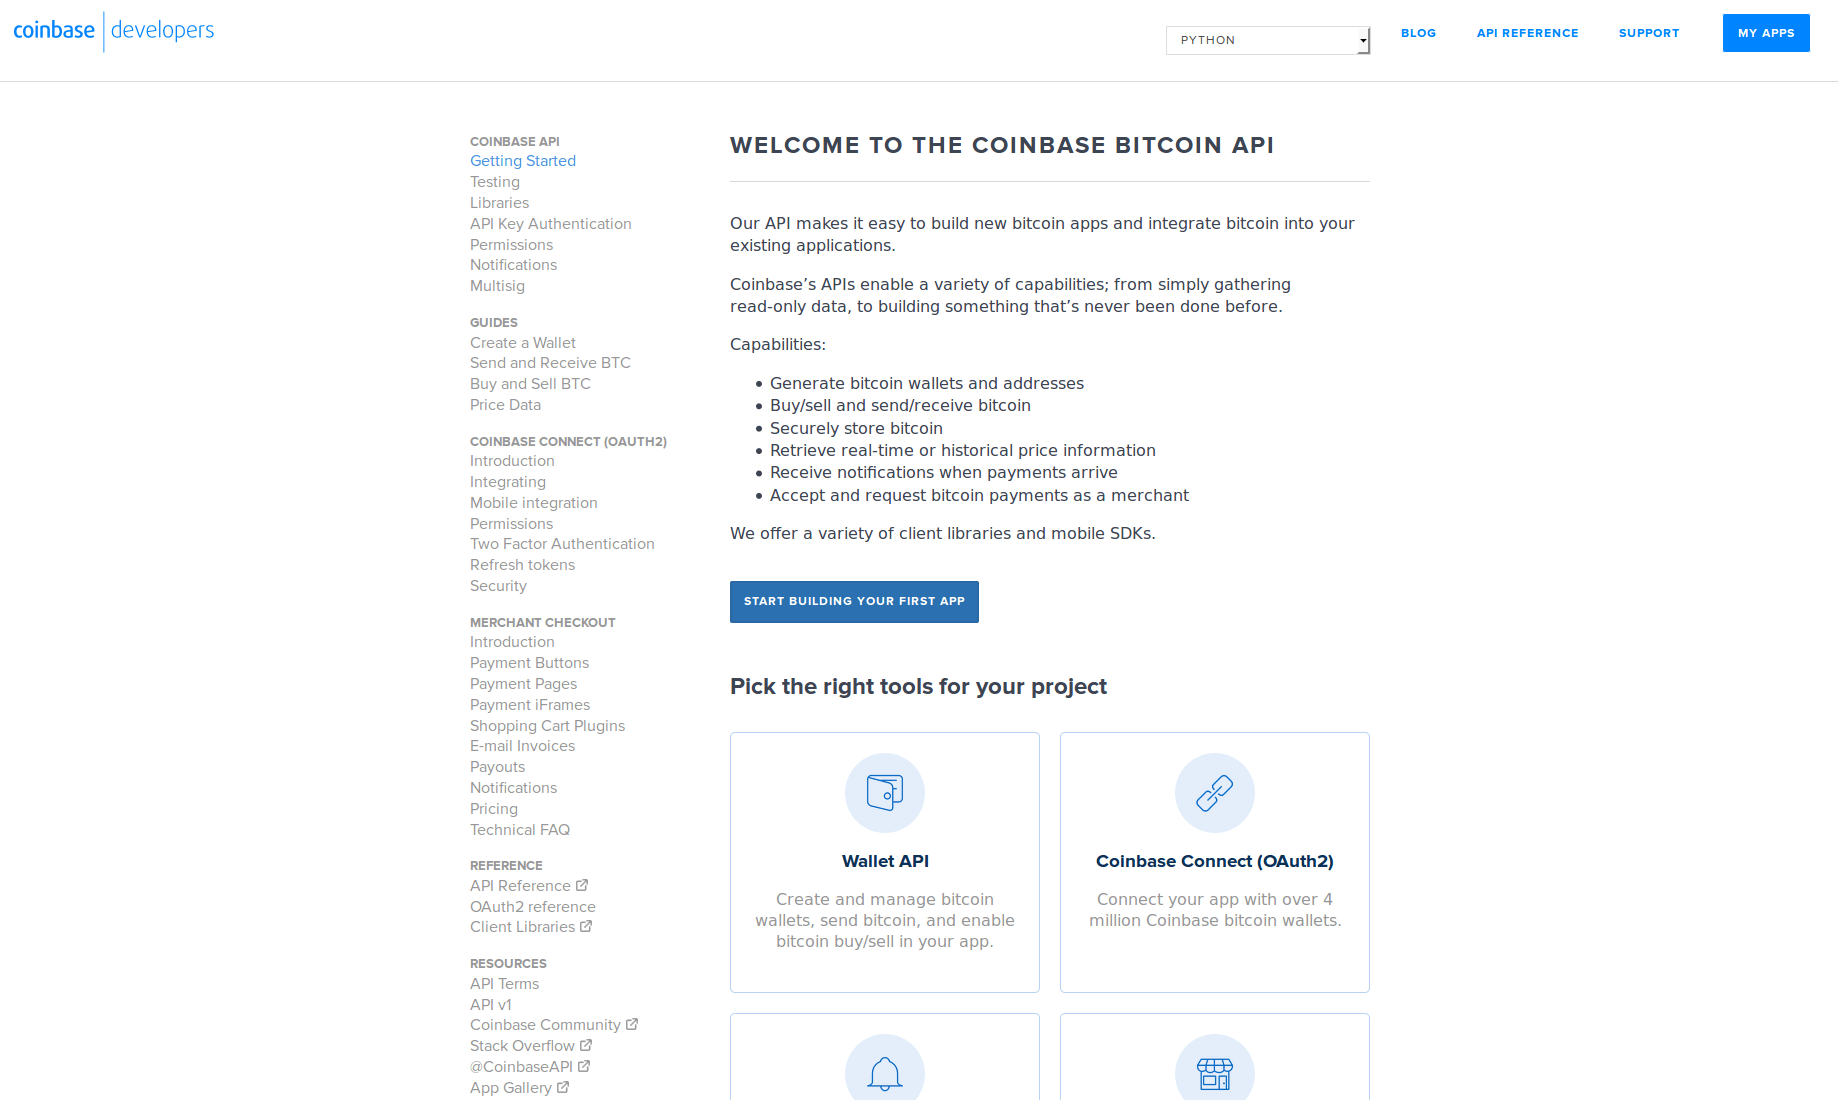 How to buy altcoins on coinbase